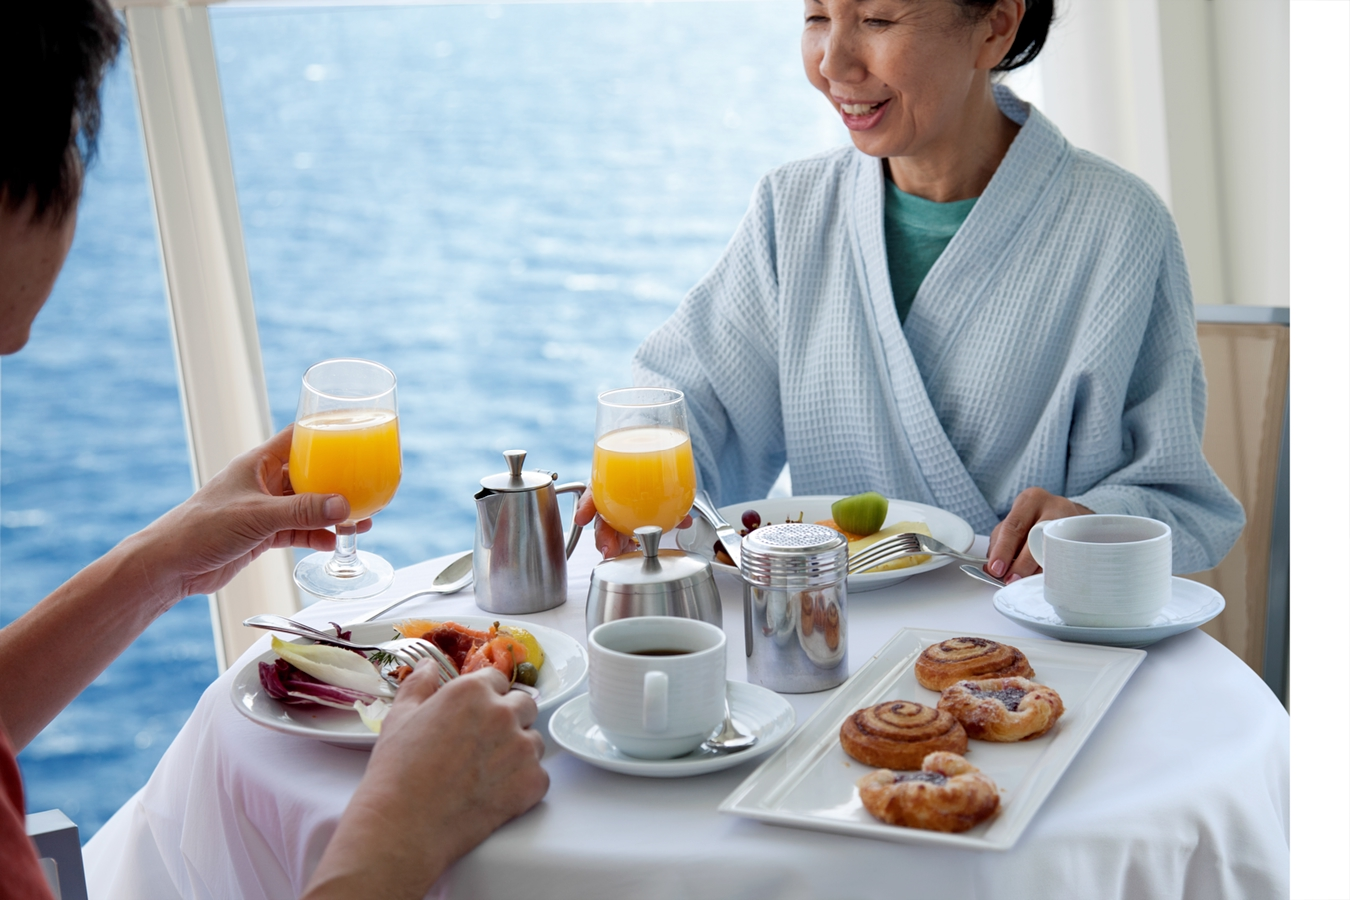 Royal Caribbean International Oasis of the seas accommodation Breakfast on balcony.jpg